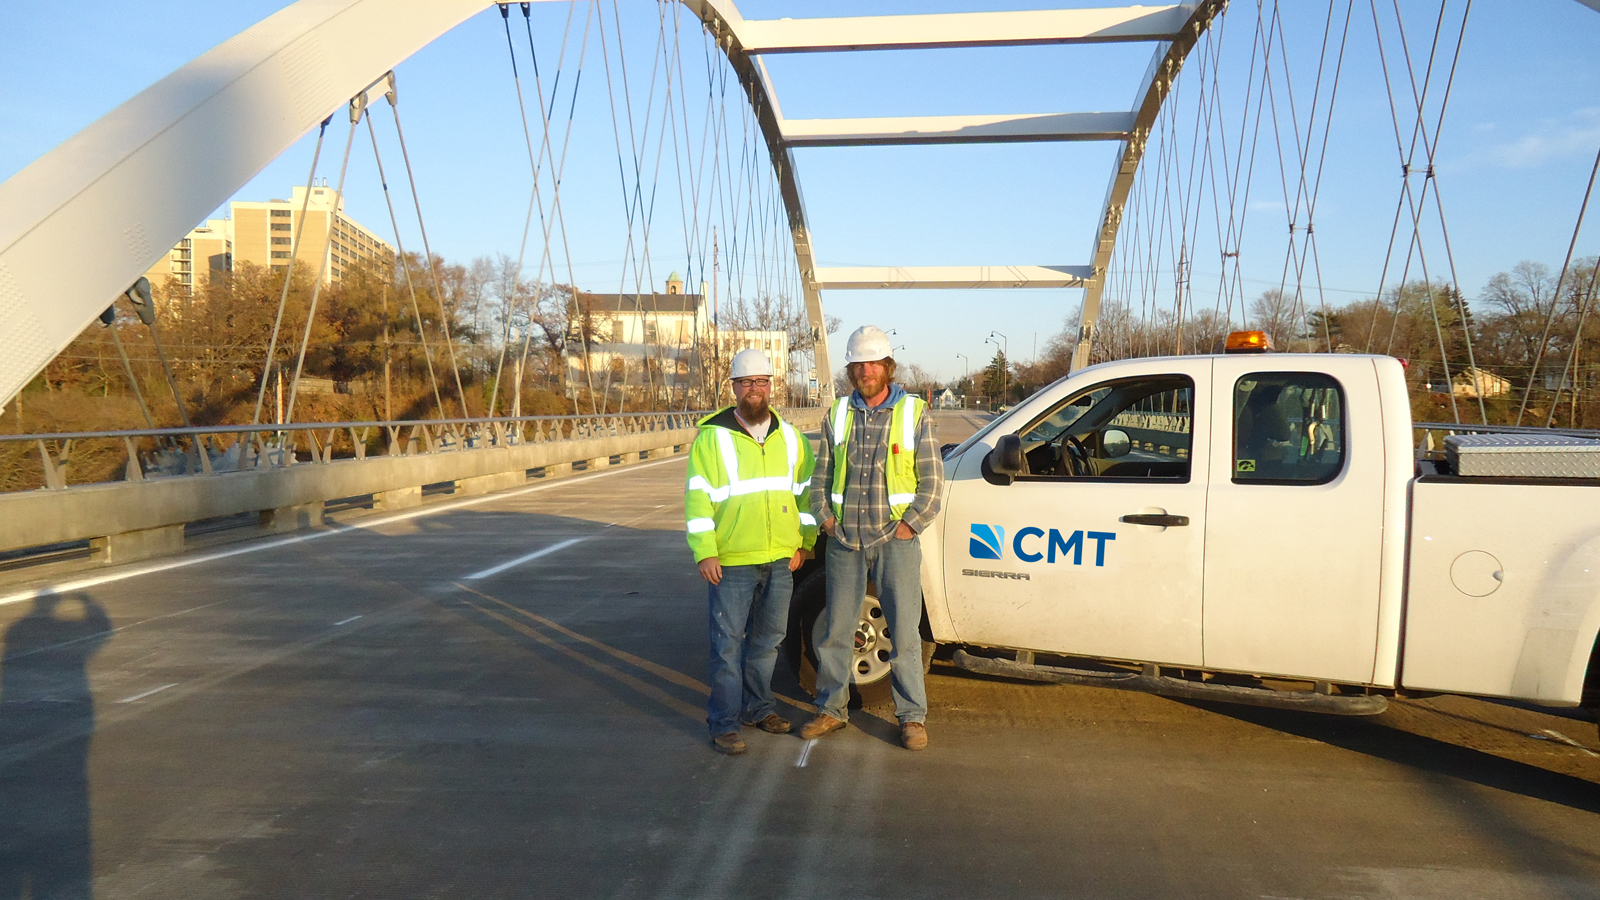 Morgan Street Bridge with CMT Truck and Employees